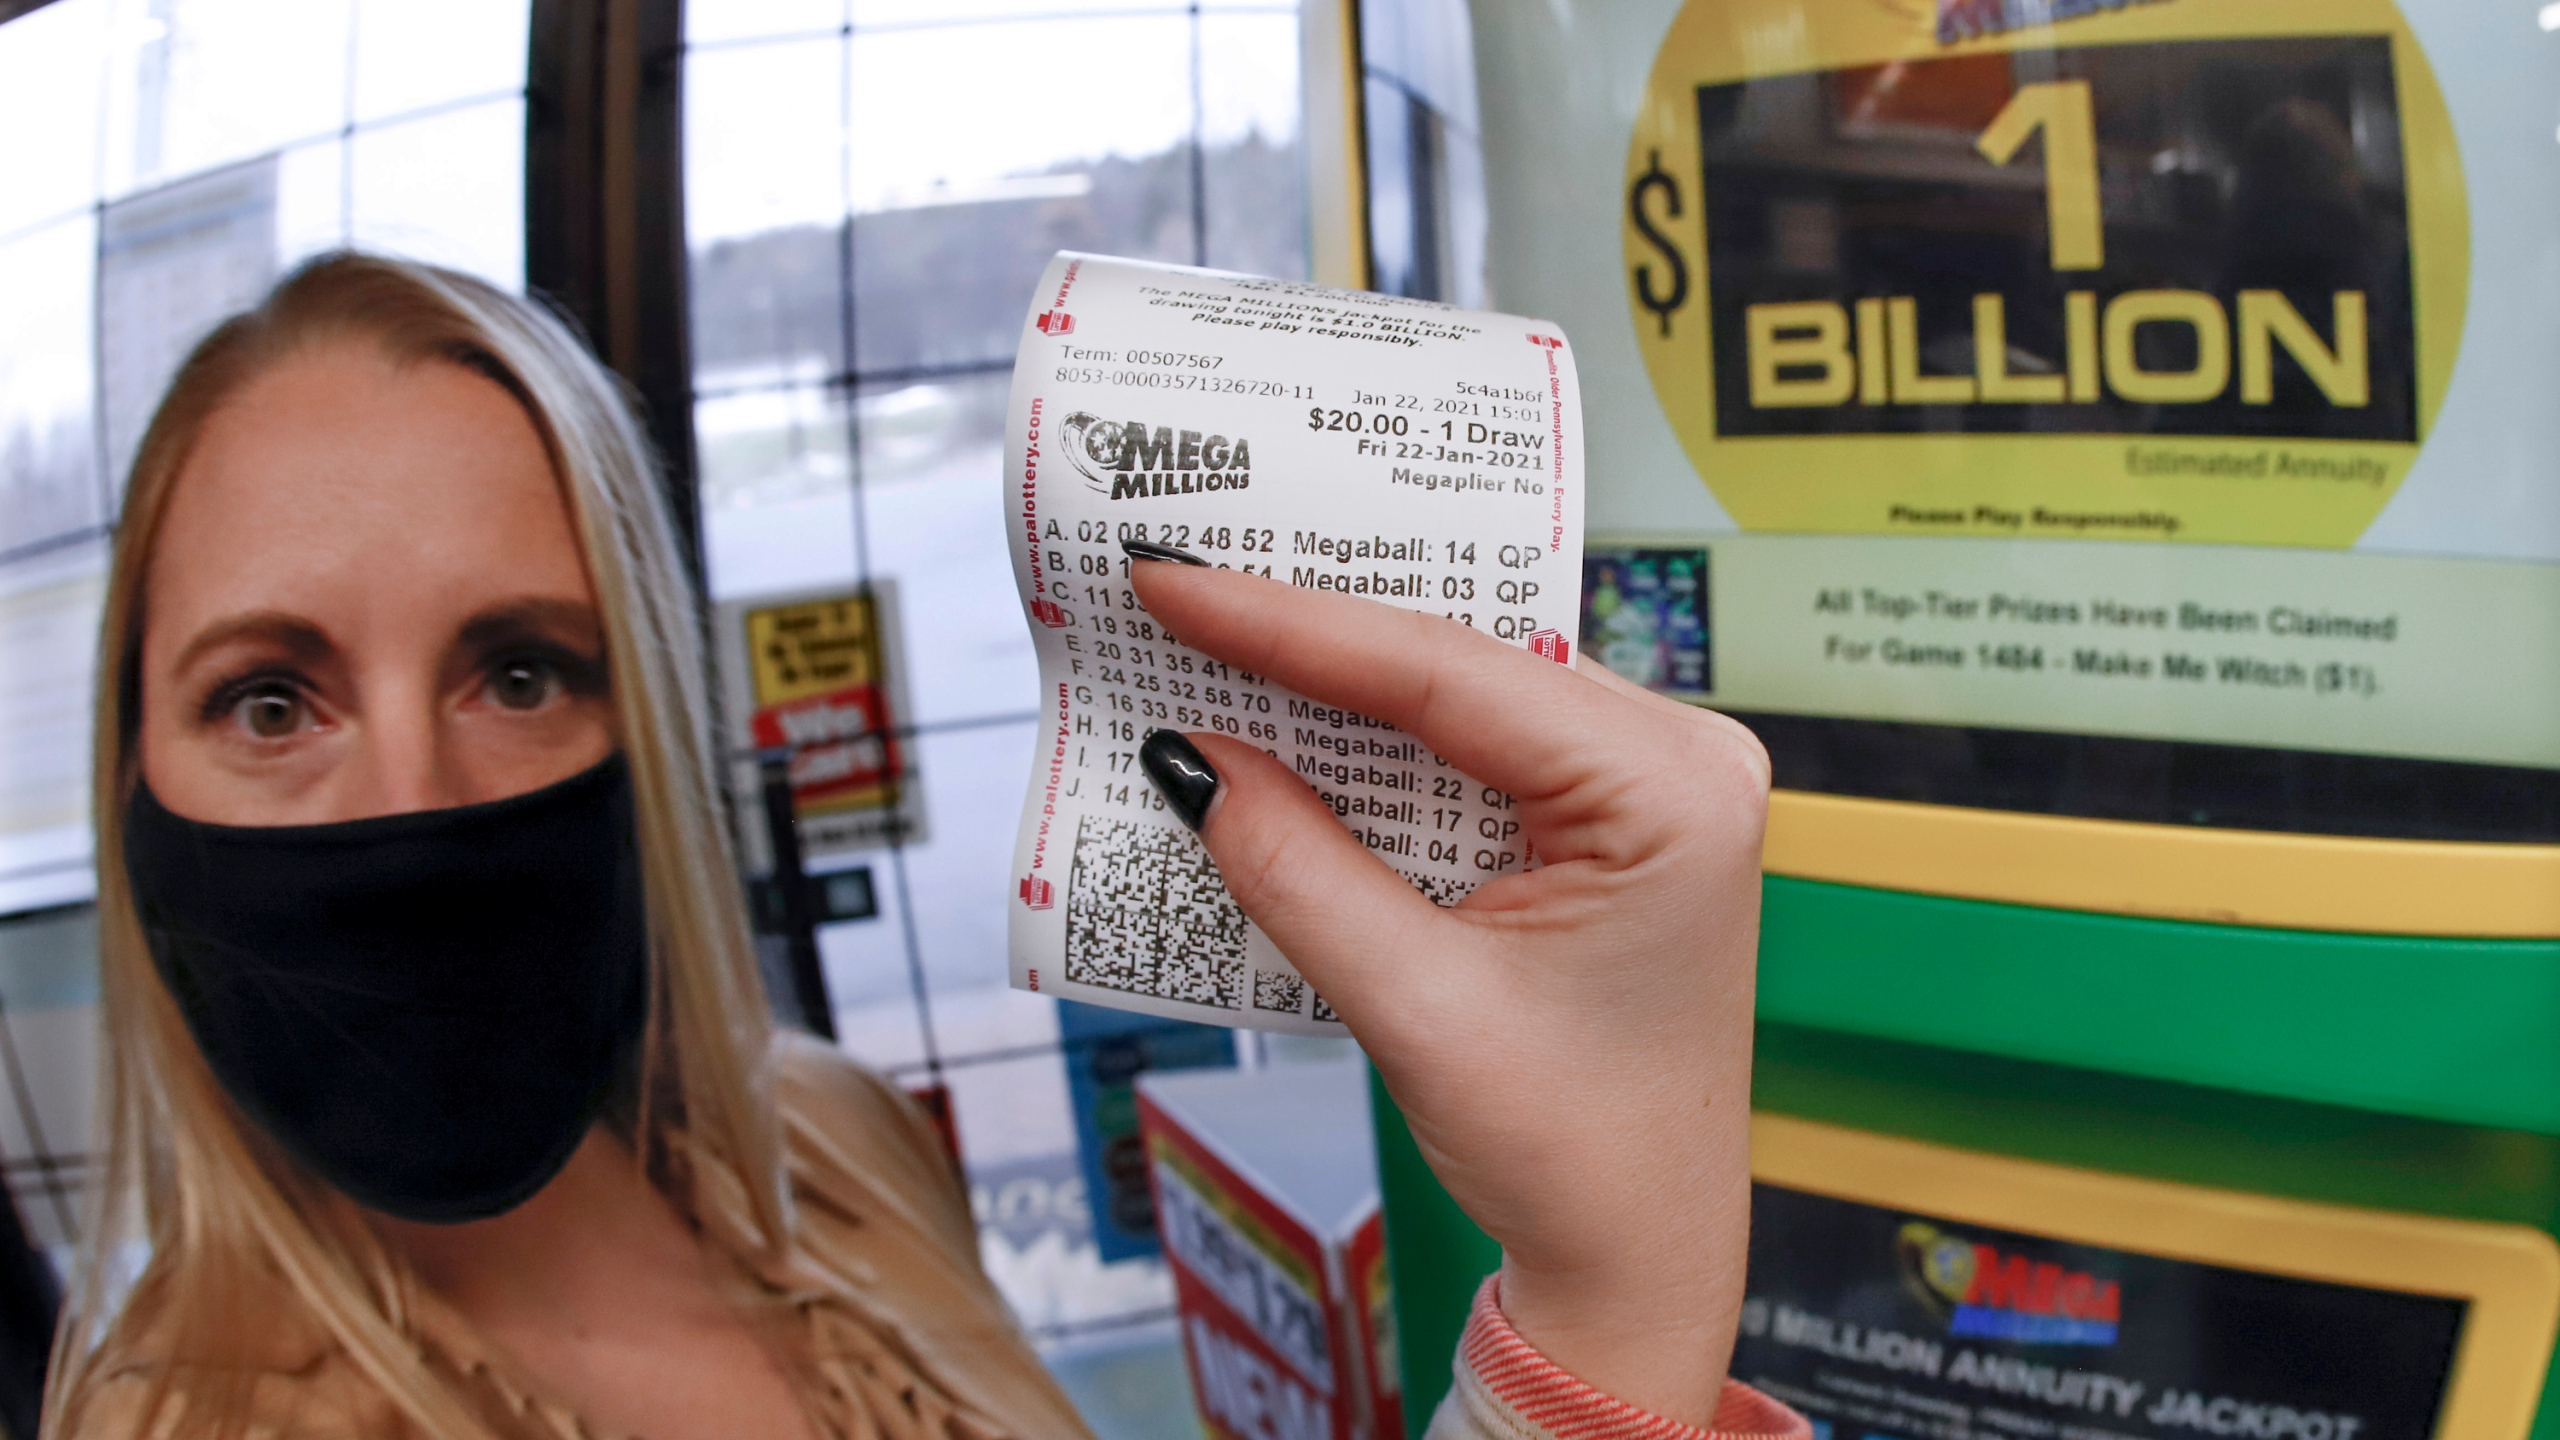 A patron, who did not want to give her name, shows the ticket she had just purchased for the Mega Millions lottery drawing at the lottery ticket vending kiosk in a Smoker Friendly store, Friday, Jan. 22, 2021, in Cranberry Township, Pa. (AP Photo/Keith Srakocic)